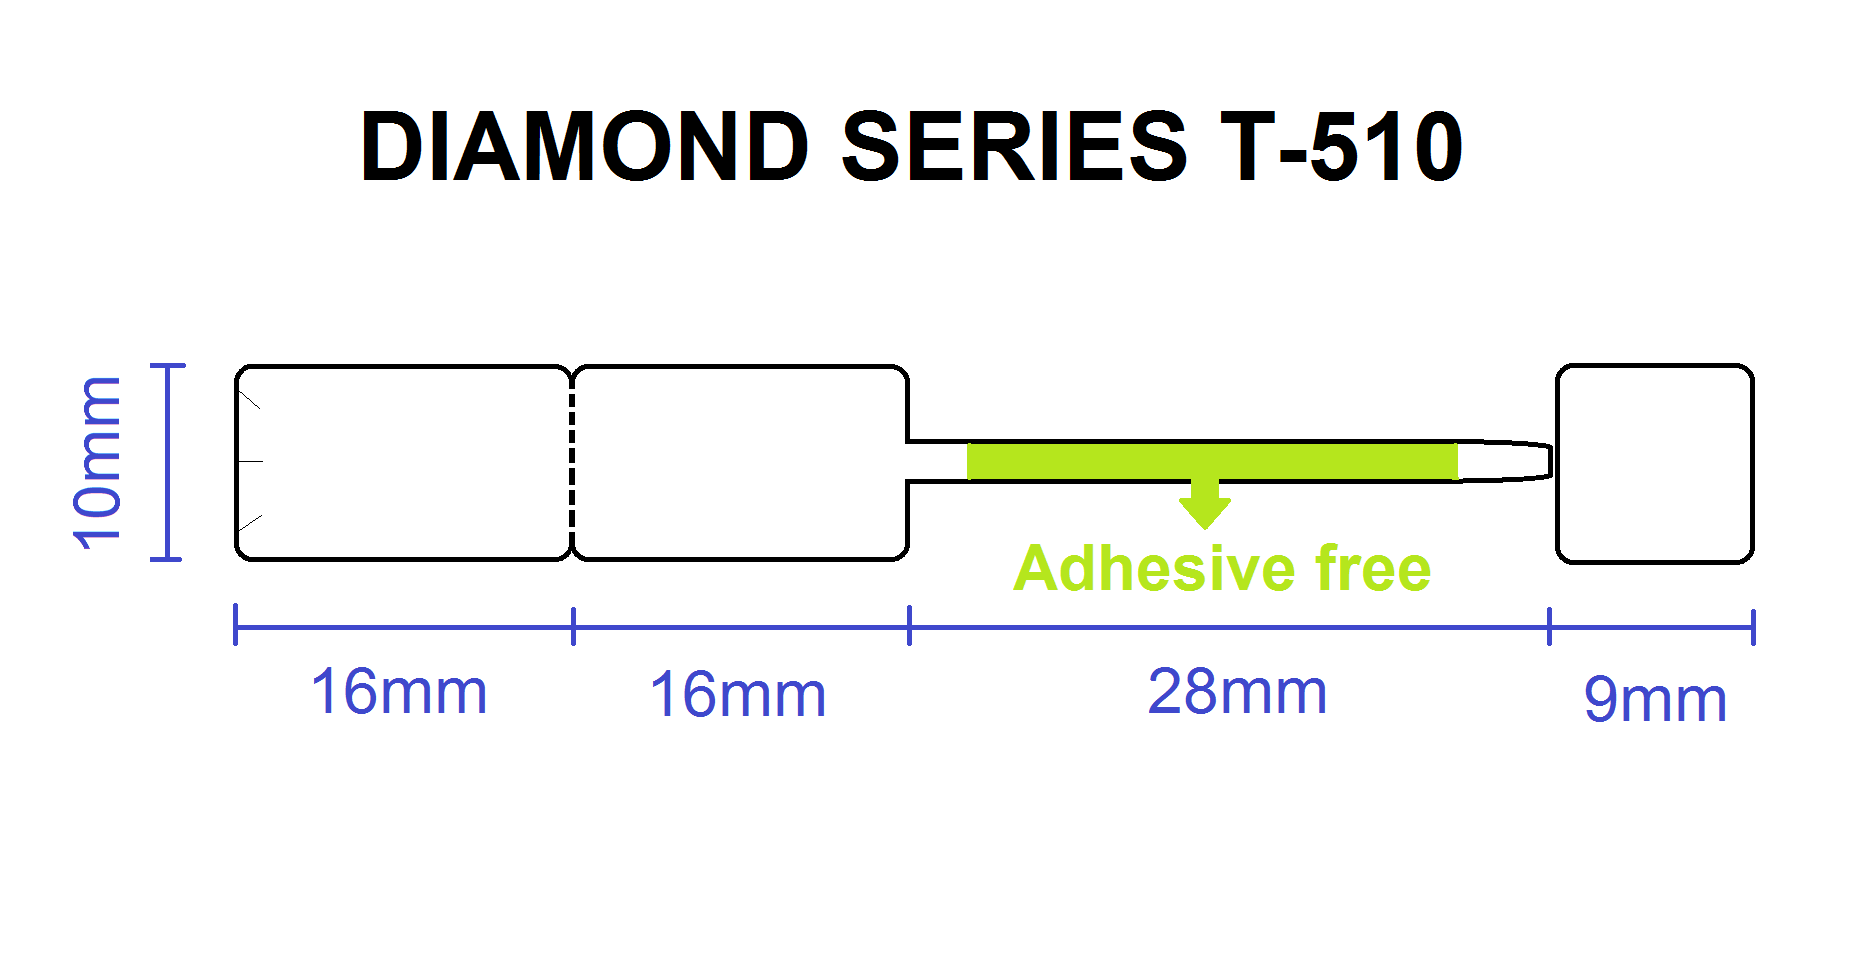 Diamond style 510 with security tears